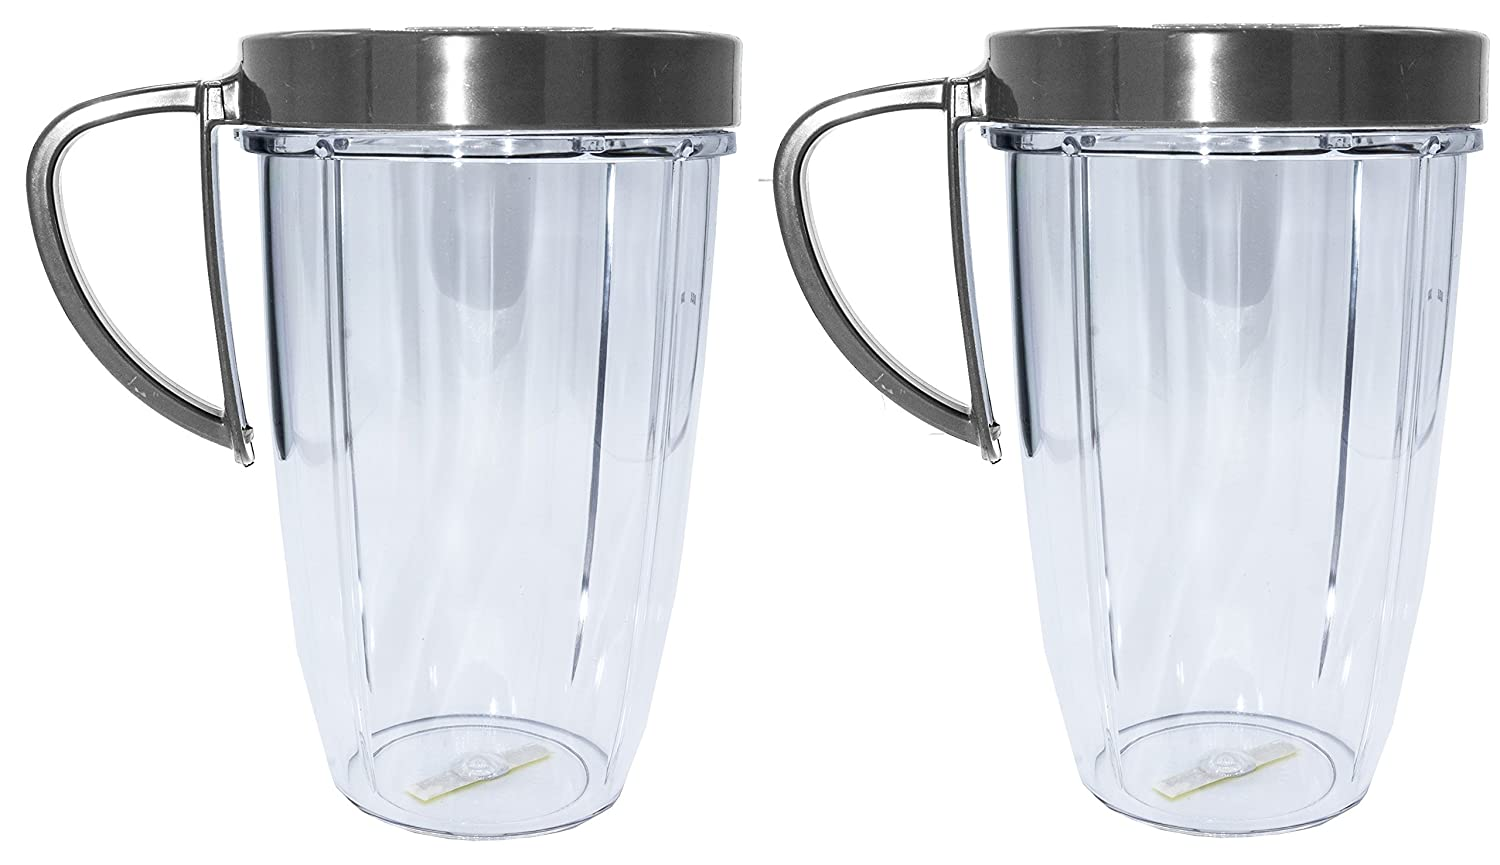 Blendin 24 Ounce Large Tall Cup Jar with Handled Lip Rings, Fits Nutribullet NBR-101B Blenders, (2 Pack)